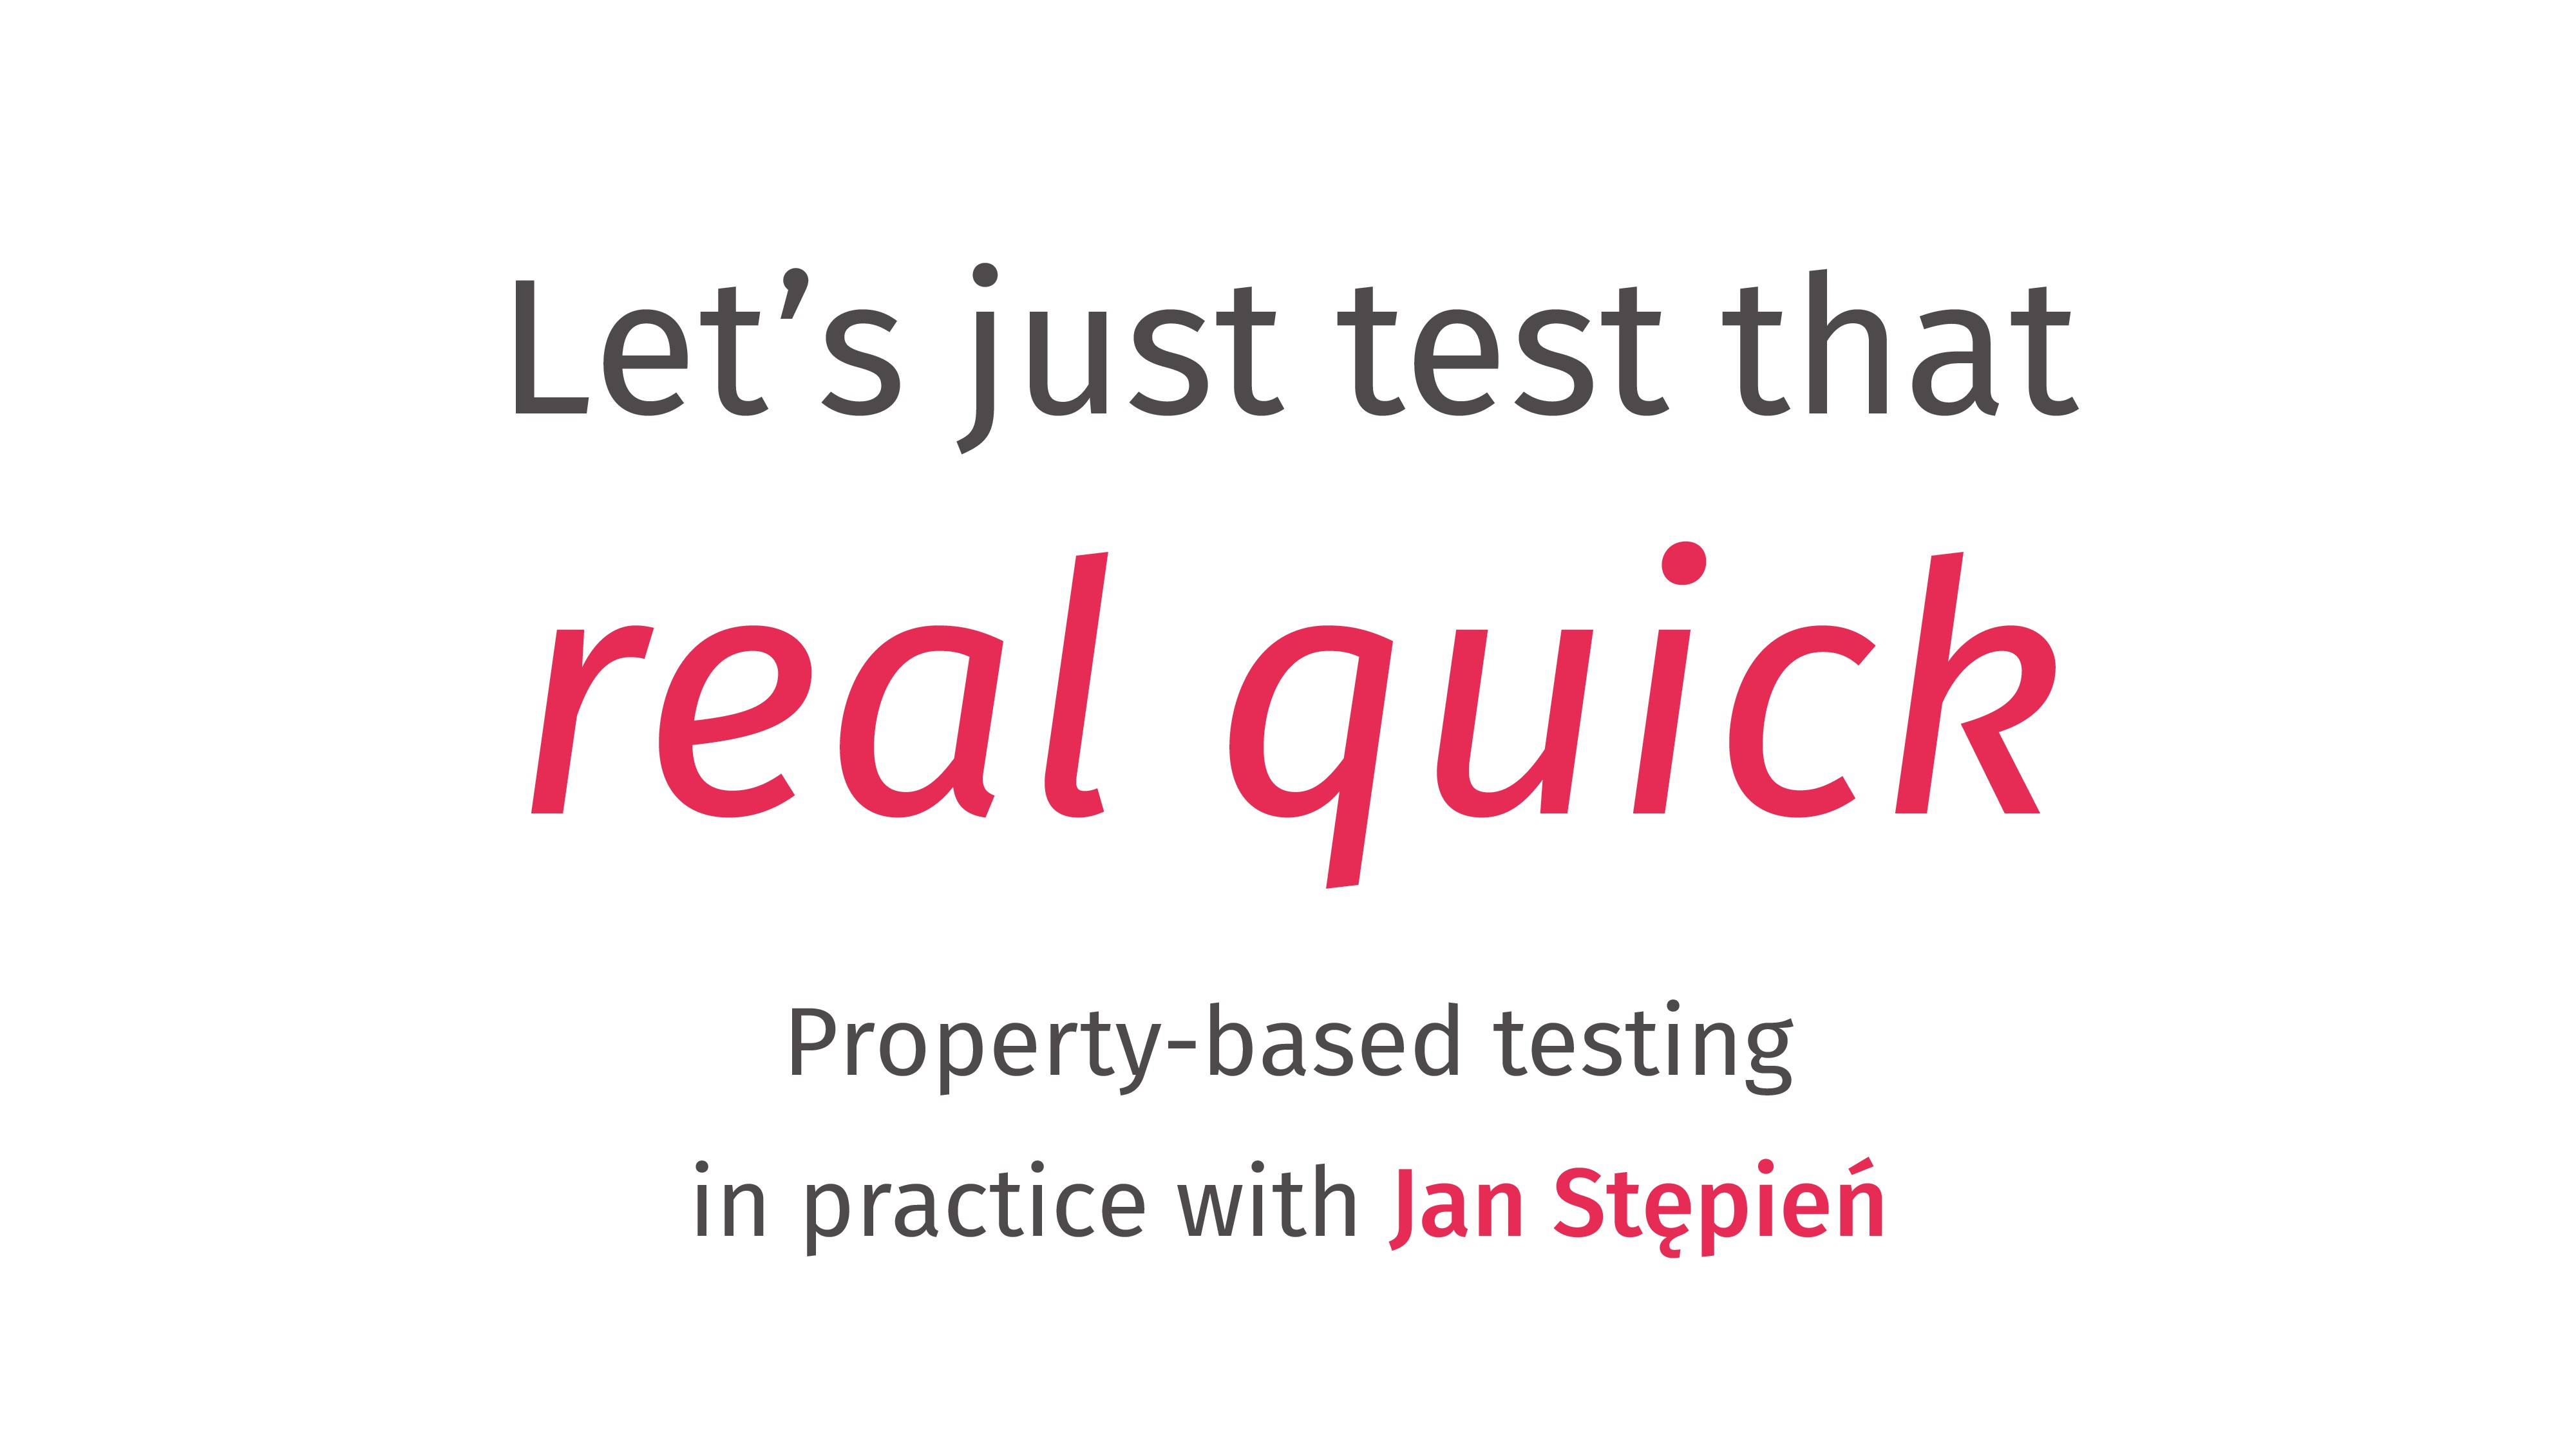 Let's just test that Property-based testing